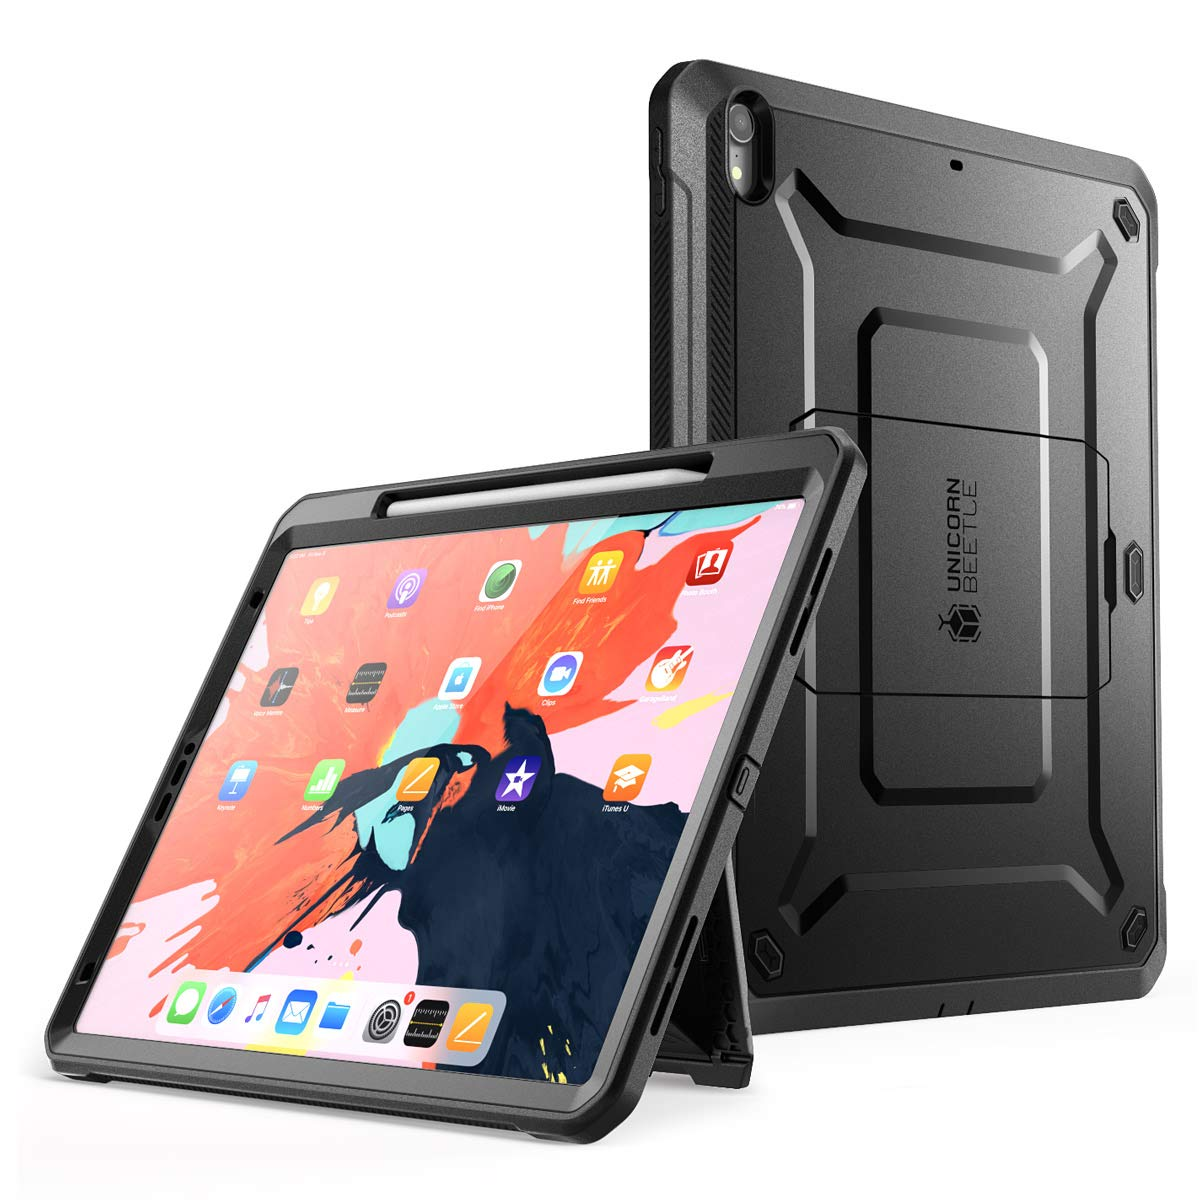 SUPCASE Support Apple Pencil Charging with Built-in Screen Protector Full-Body Rugged Kickstand Protective Case for iPad Pro 12.9 2018 Release- UB Pro Series (Black)